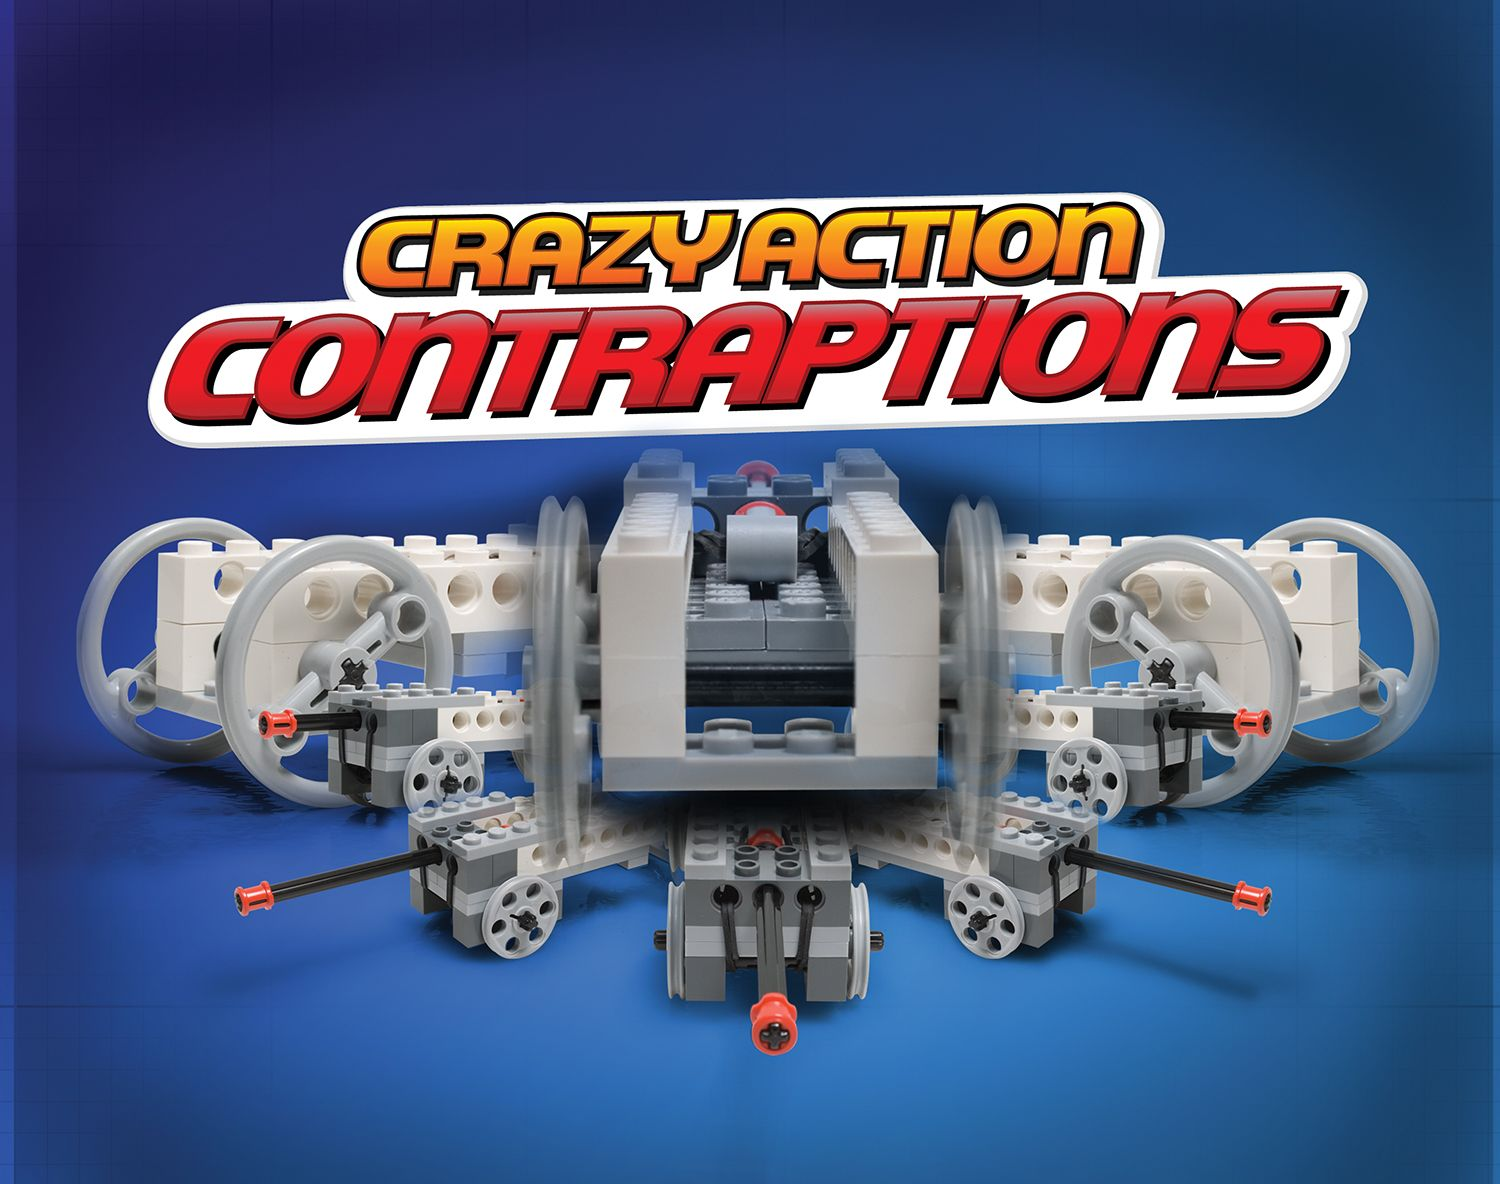 Lego Crazy Action Contraptions From Klutz Available At Klutz Com Or A Toy Store Near You Toy Store Books For Boys Lego Kits